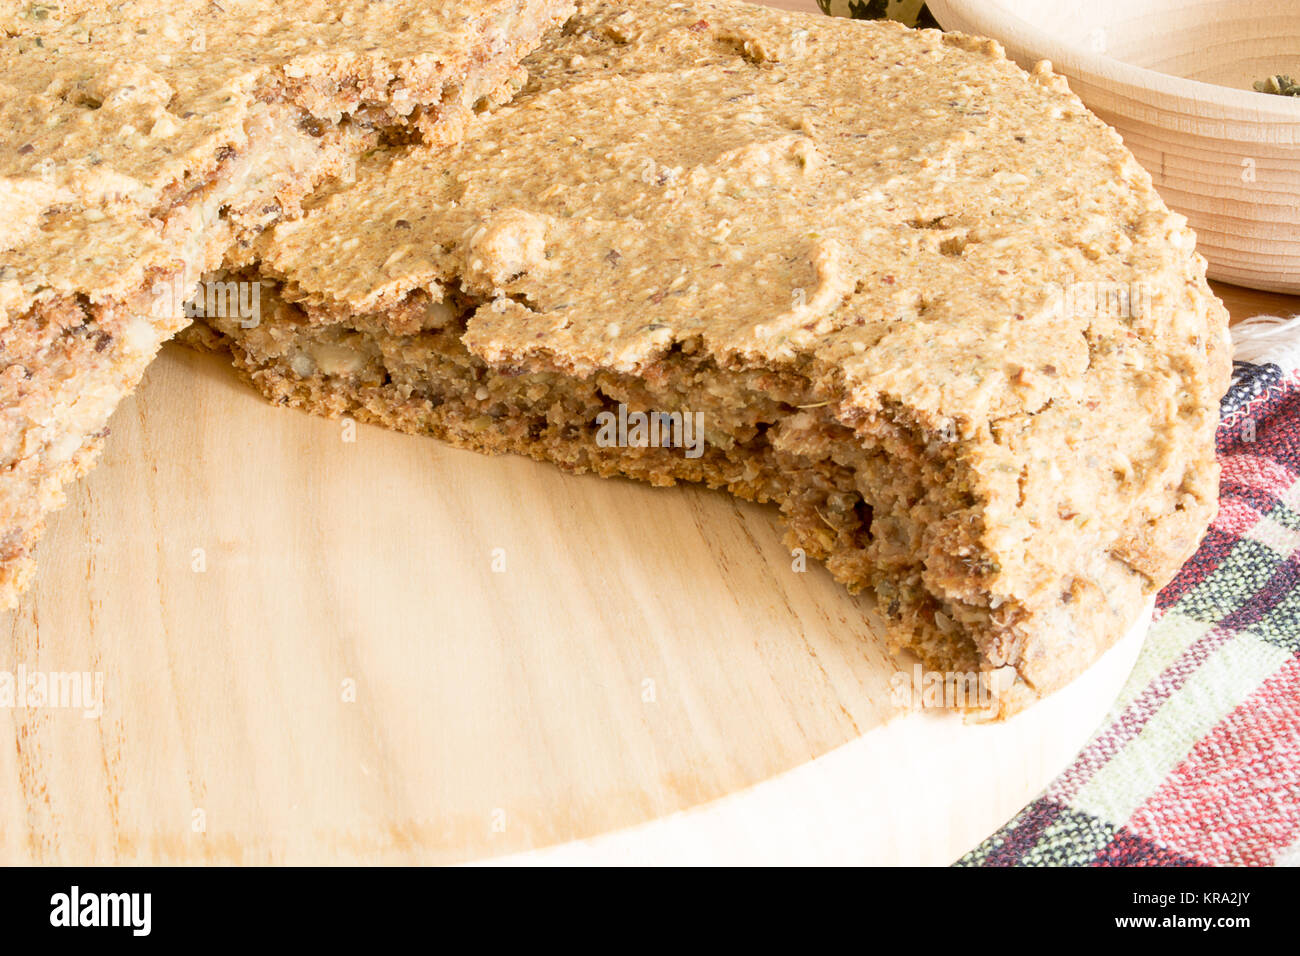 Domestic Unleavened Barley Bread Stock Photo 169252019 Alamy